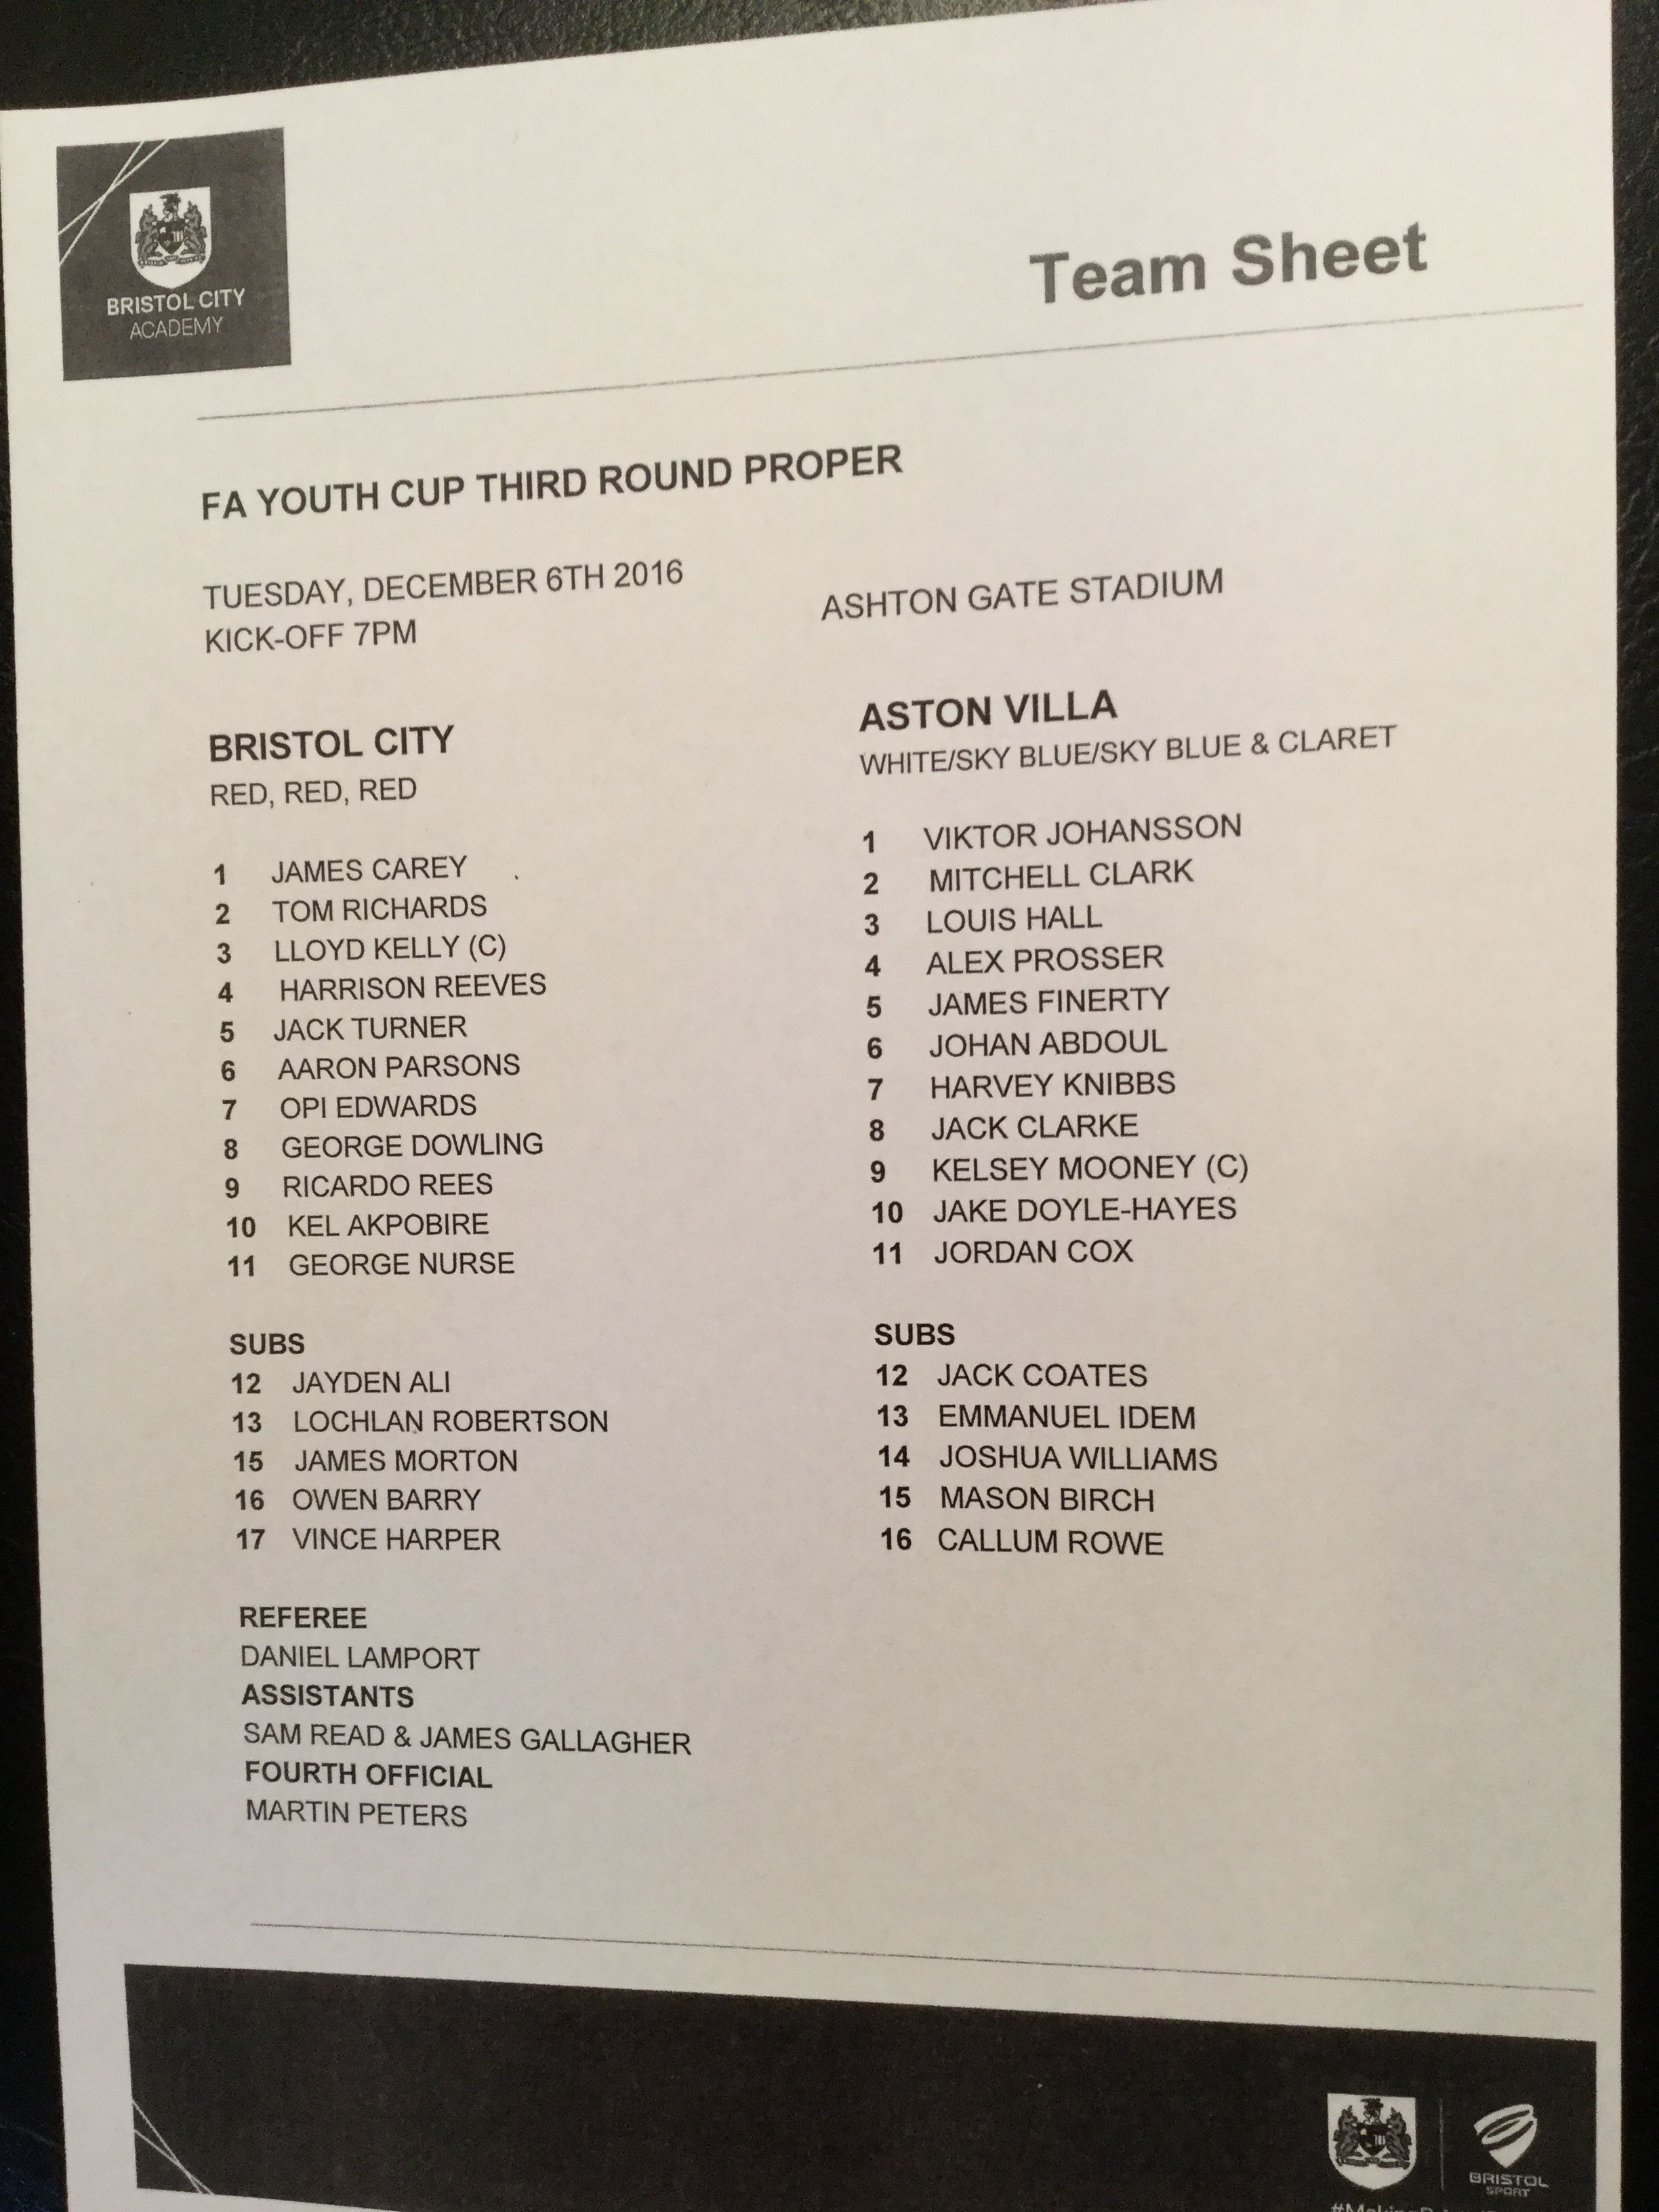 Bristol City v Aston Villa 06-12-16 Team Sheet